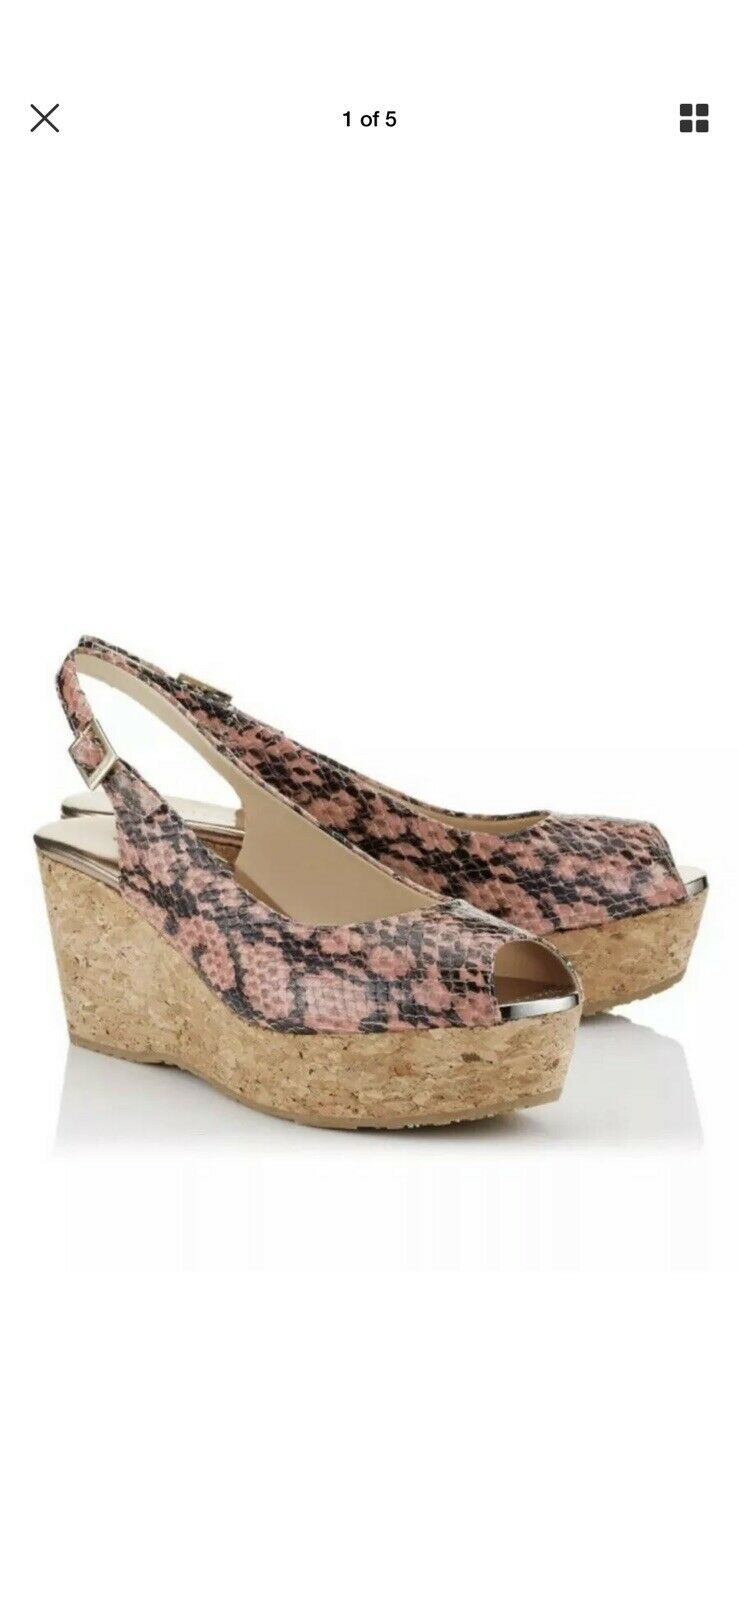 Jimmy Choo Praise Leather Snake Skin Cork Wedge Sandals Size 35.5 Europe US 5.5